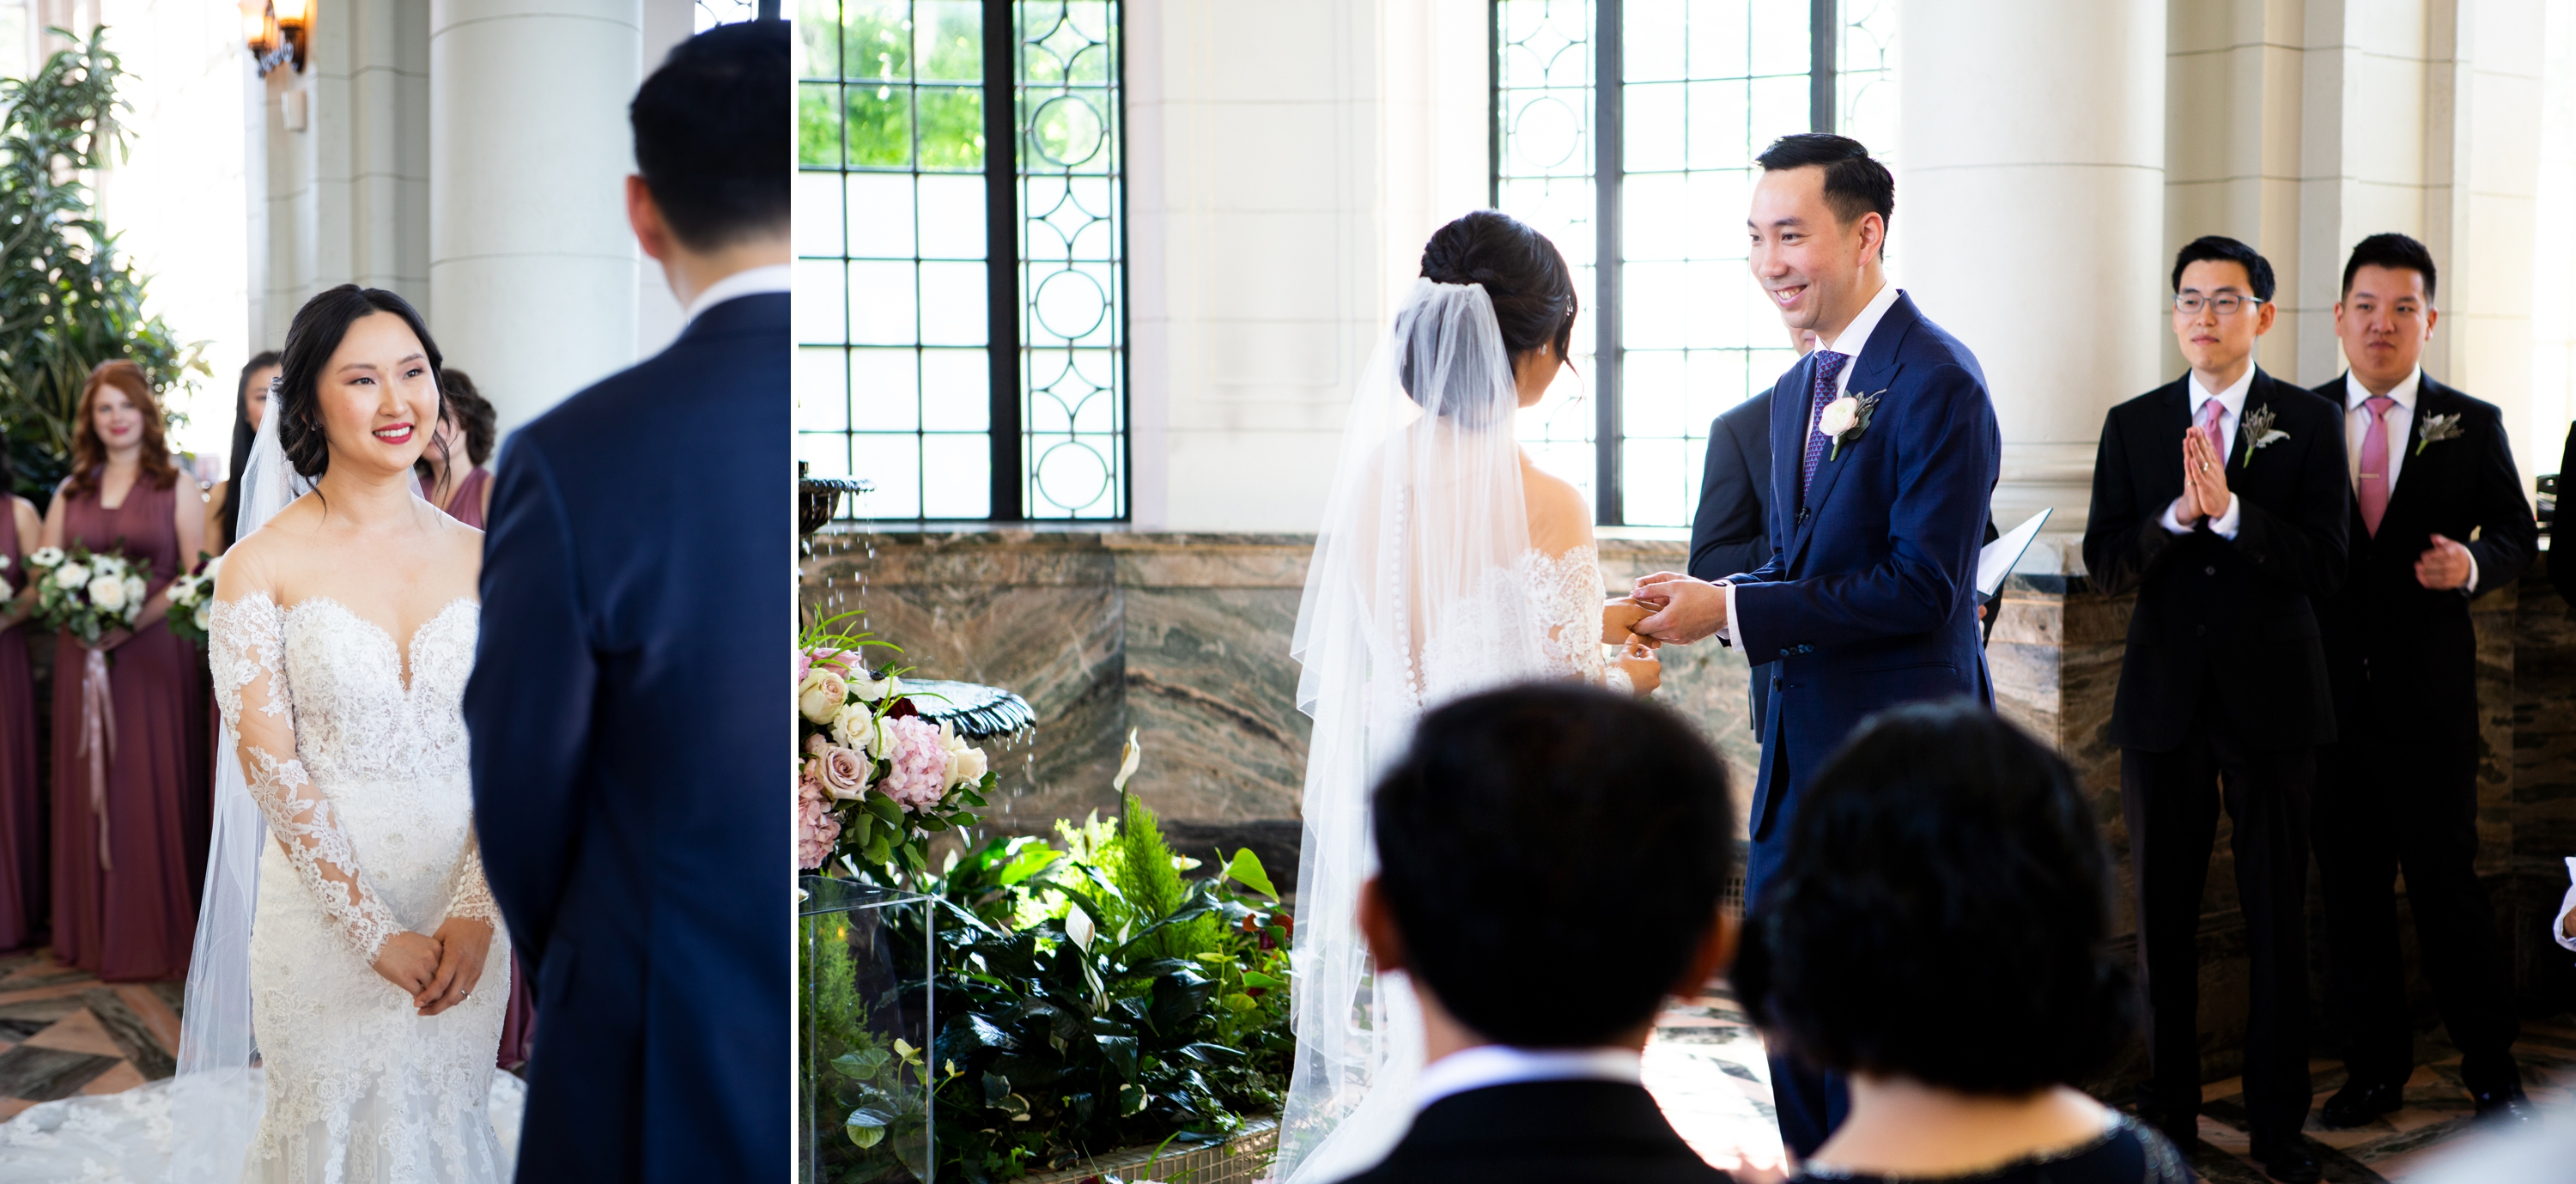 Bride Groom Ceremony Toronto Casa Loma Four Seasons Chinese Wedding Zsuzsi Pal Photography Cindy Brian